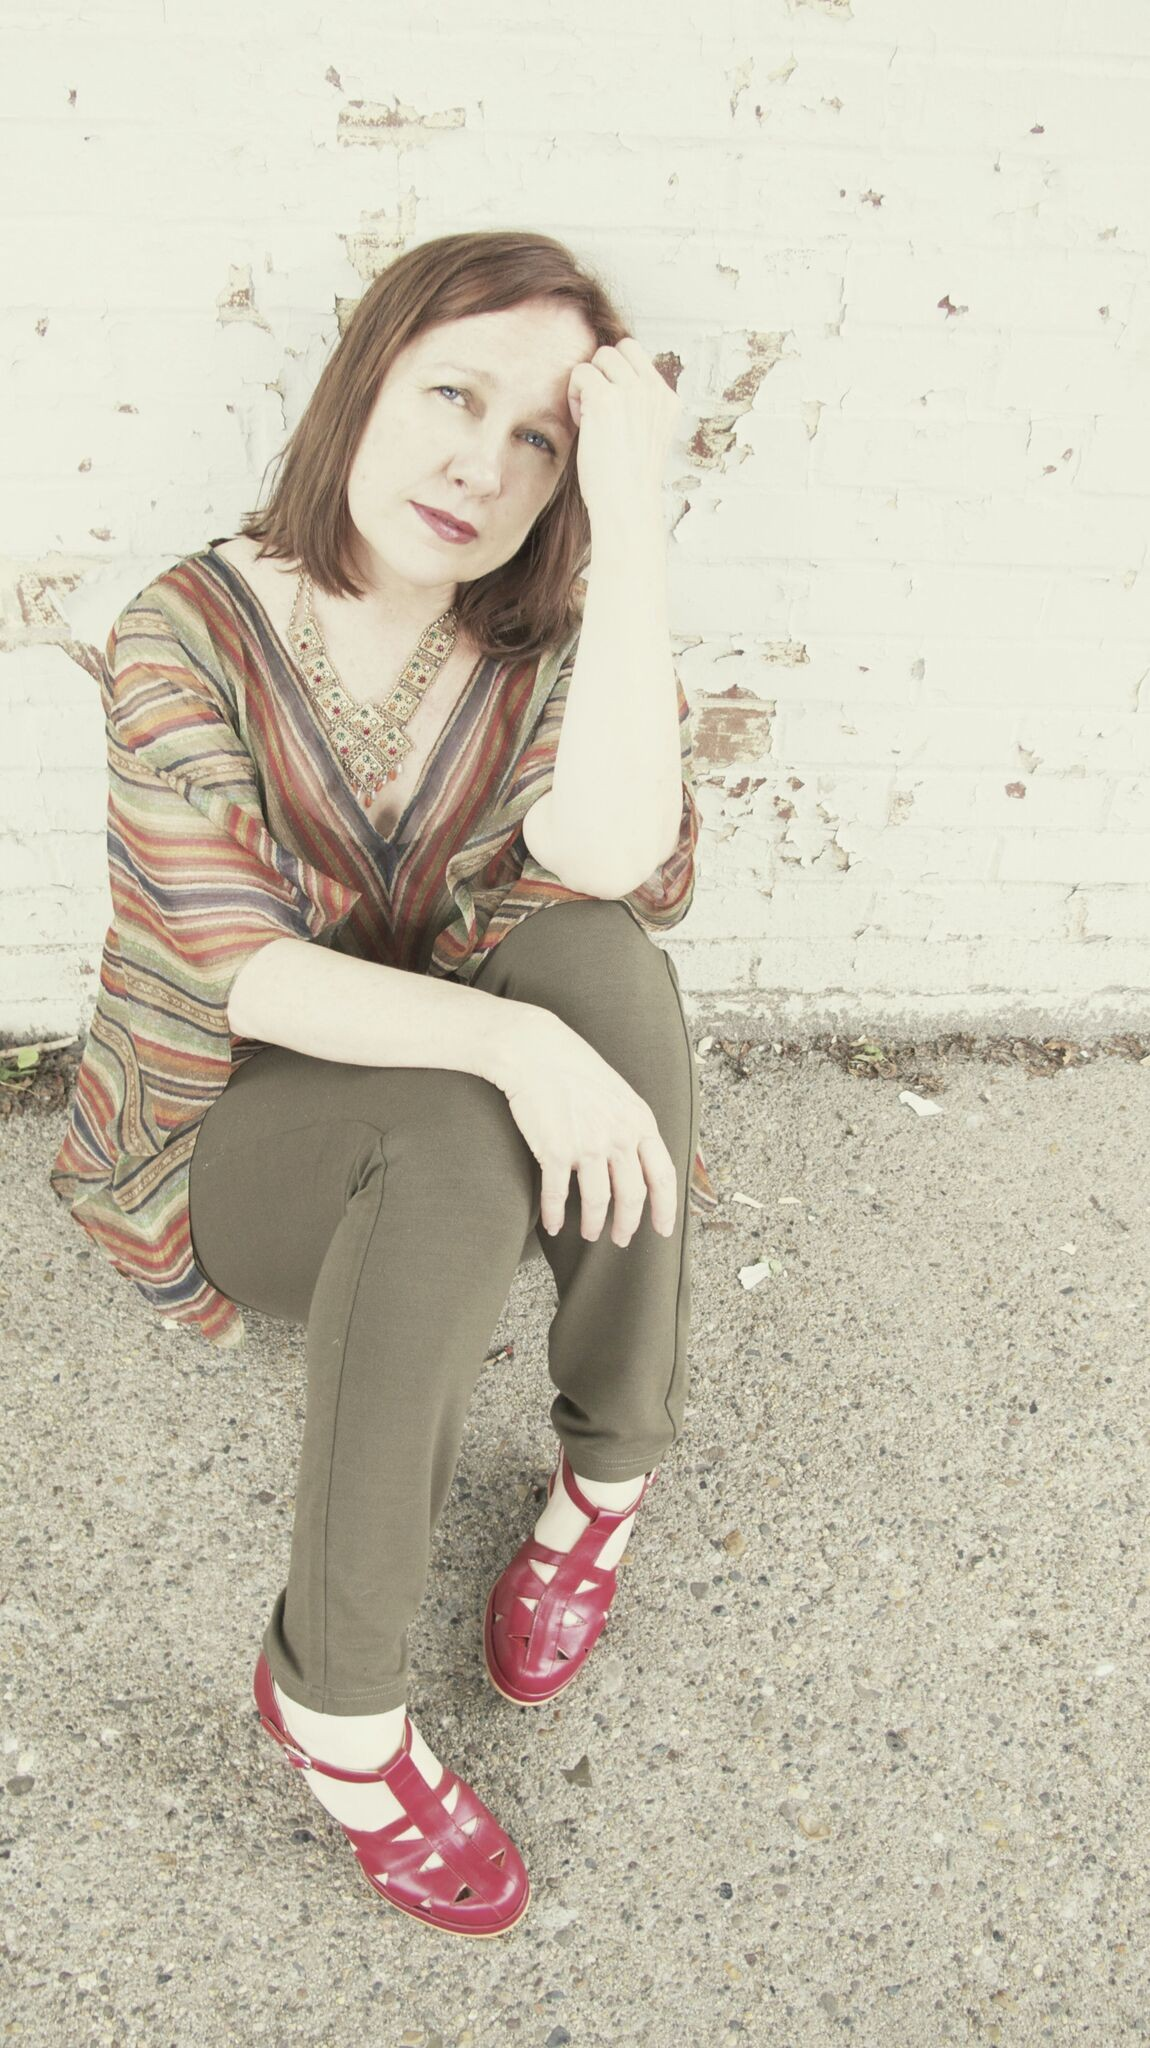 Ready for an evening of American roots music? Southern Fried presents Rodney Cowell and Iris DeMent